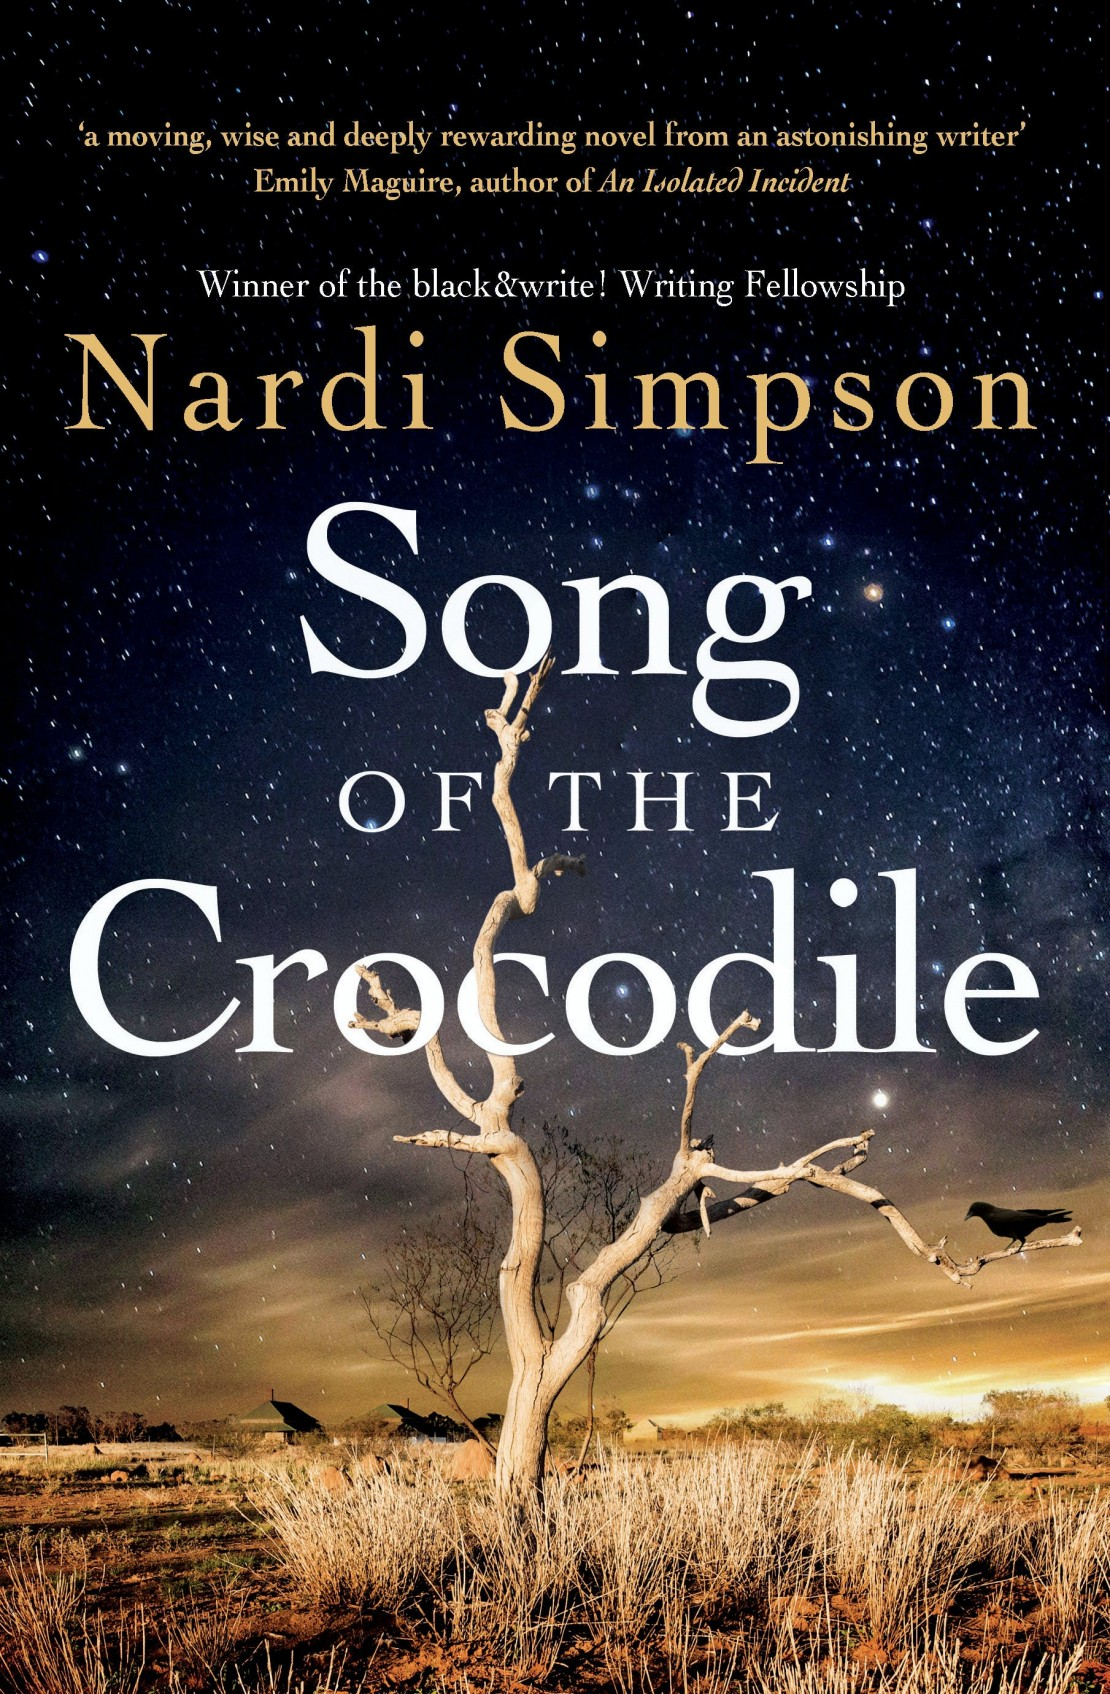 Book cover for Song of the Crocodile by Nardi Simpson Cover includes a dying tree and in the background a town with stars above in the nights sky